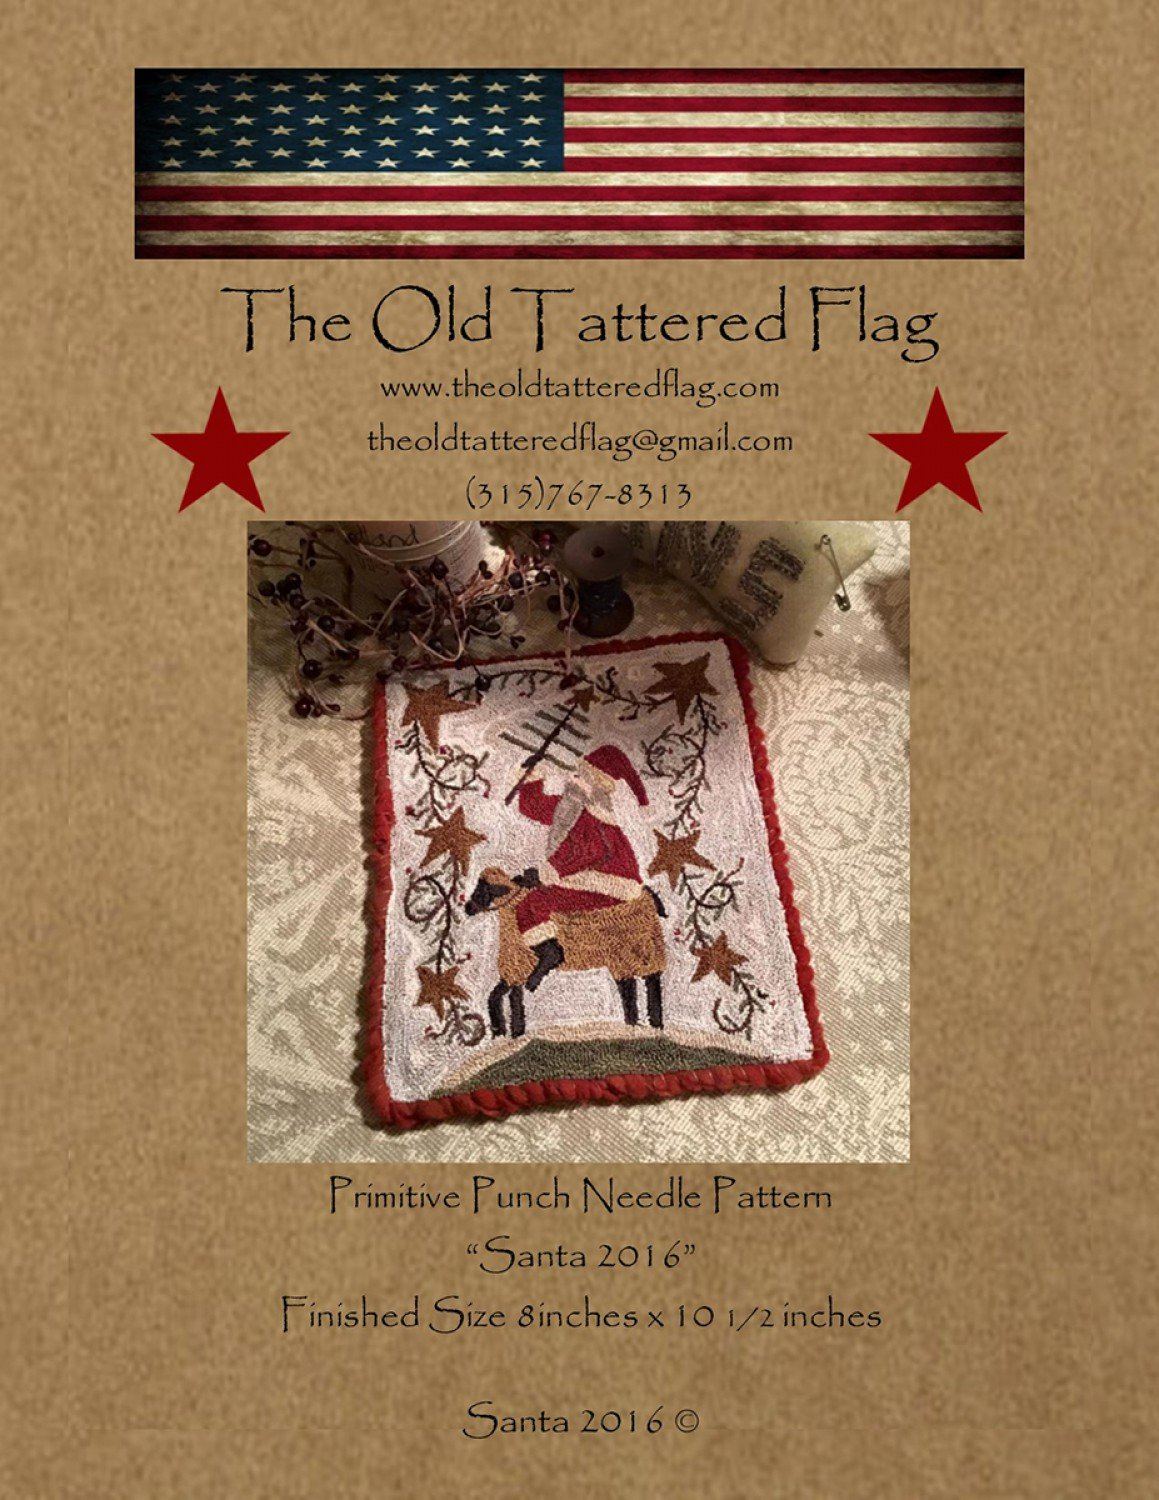 Santa 2016 Sheep Christmas Punch Needle Embroidery Old Tattered Flag Pattern